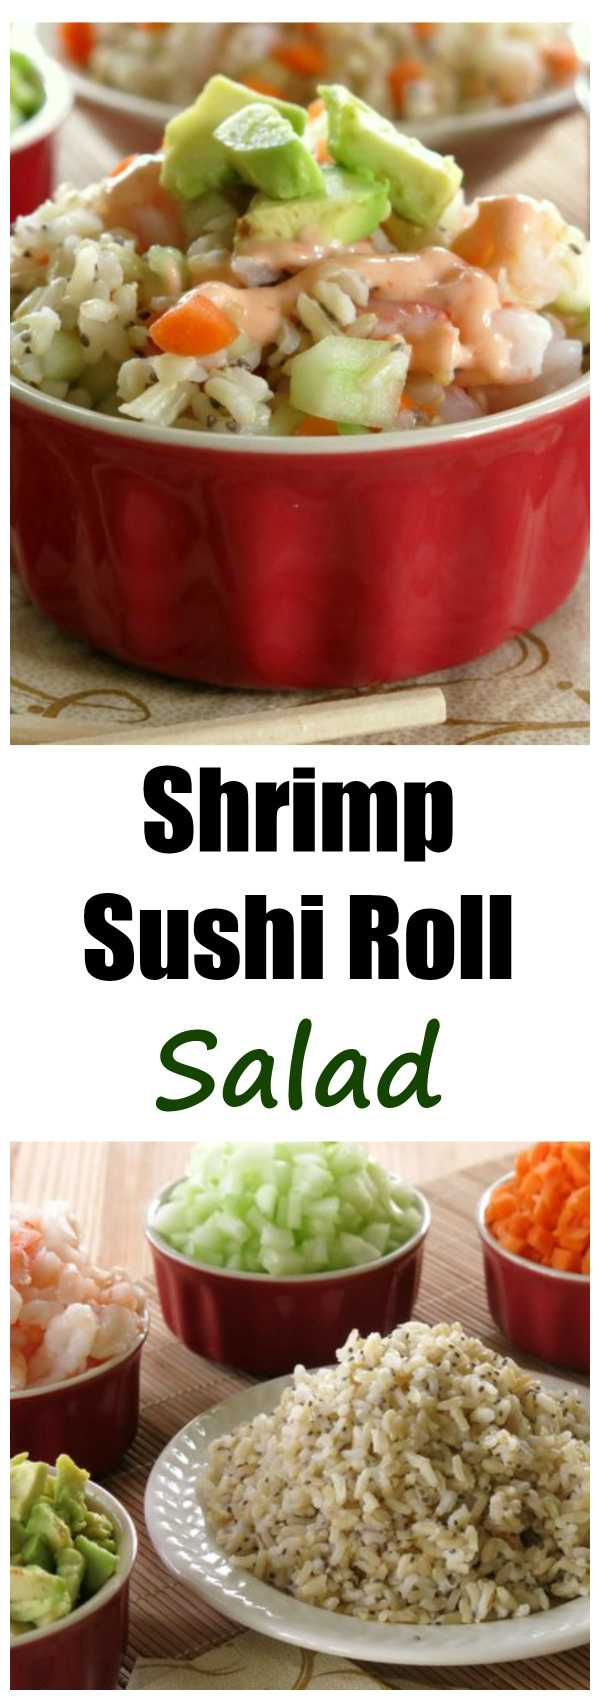 "Deconstructed Shrimp Sushi Roll Salad Recipe with Spicy Sauce - easy way to get a sushi ""fix"" and no rolling is involved! Gluten-free!"